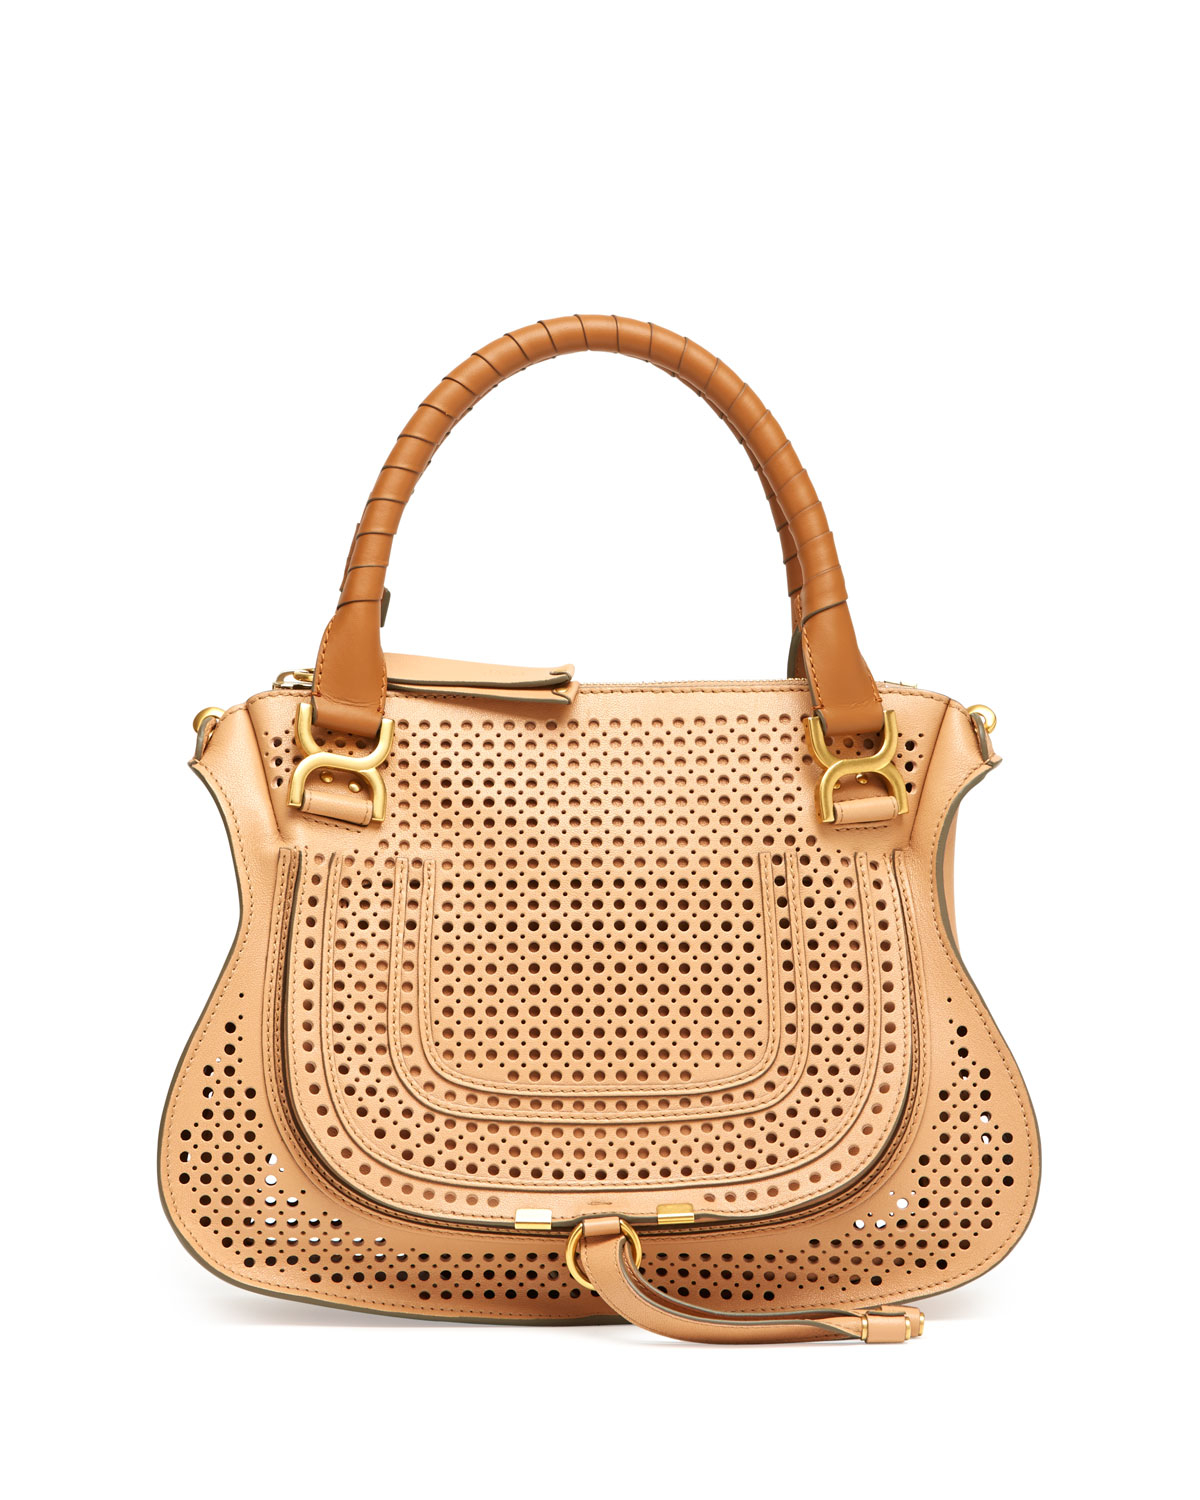 a553b1e32321 Lyst - Chloé Marcie Perforated Medium Shoulder Bag Brown in Brown